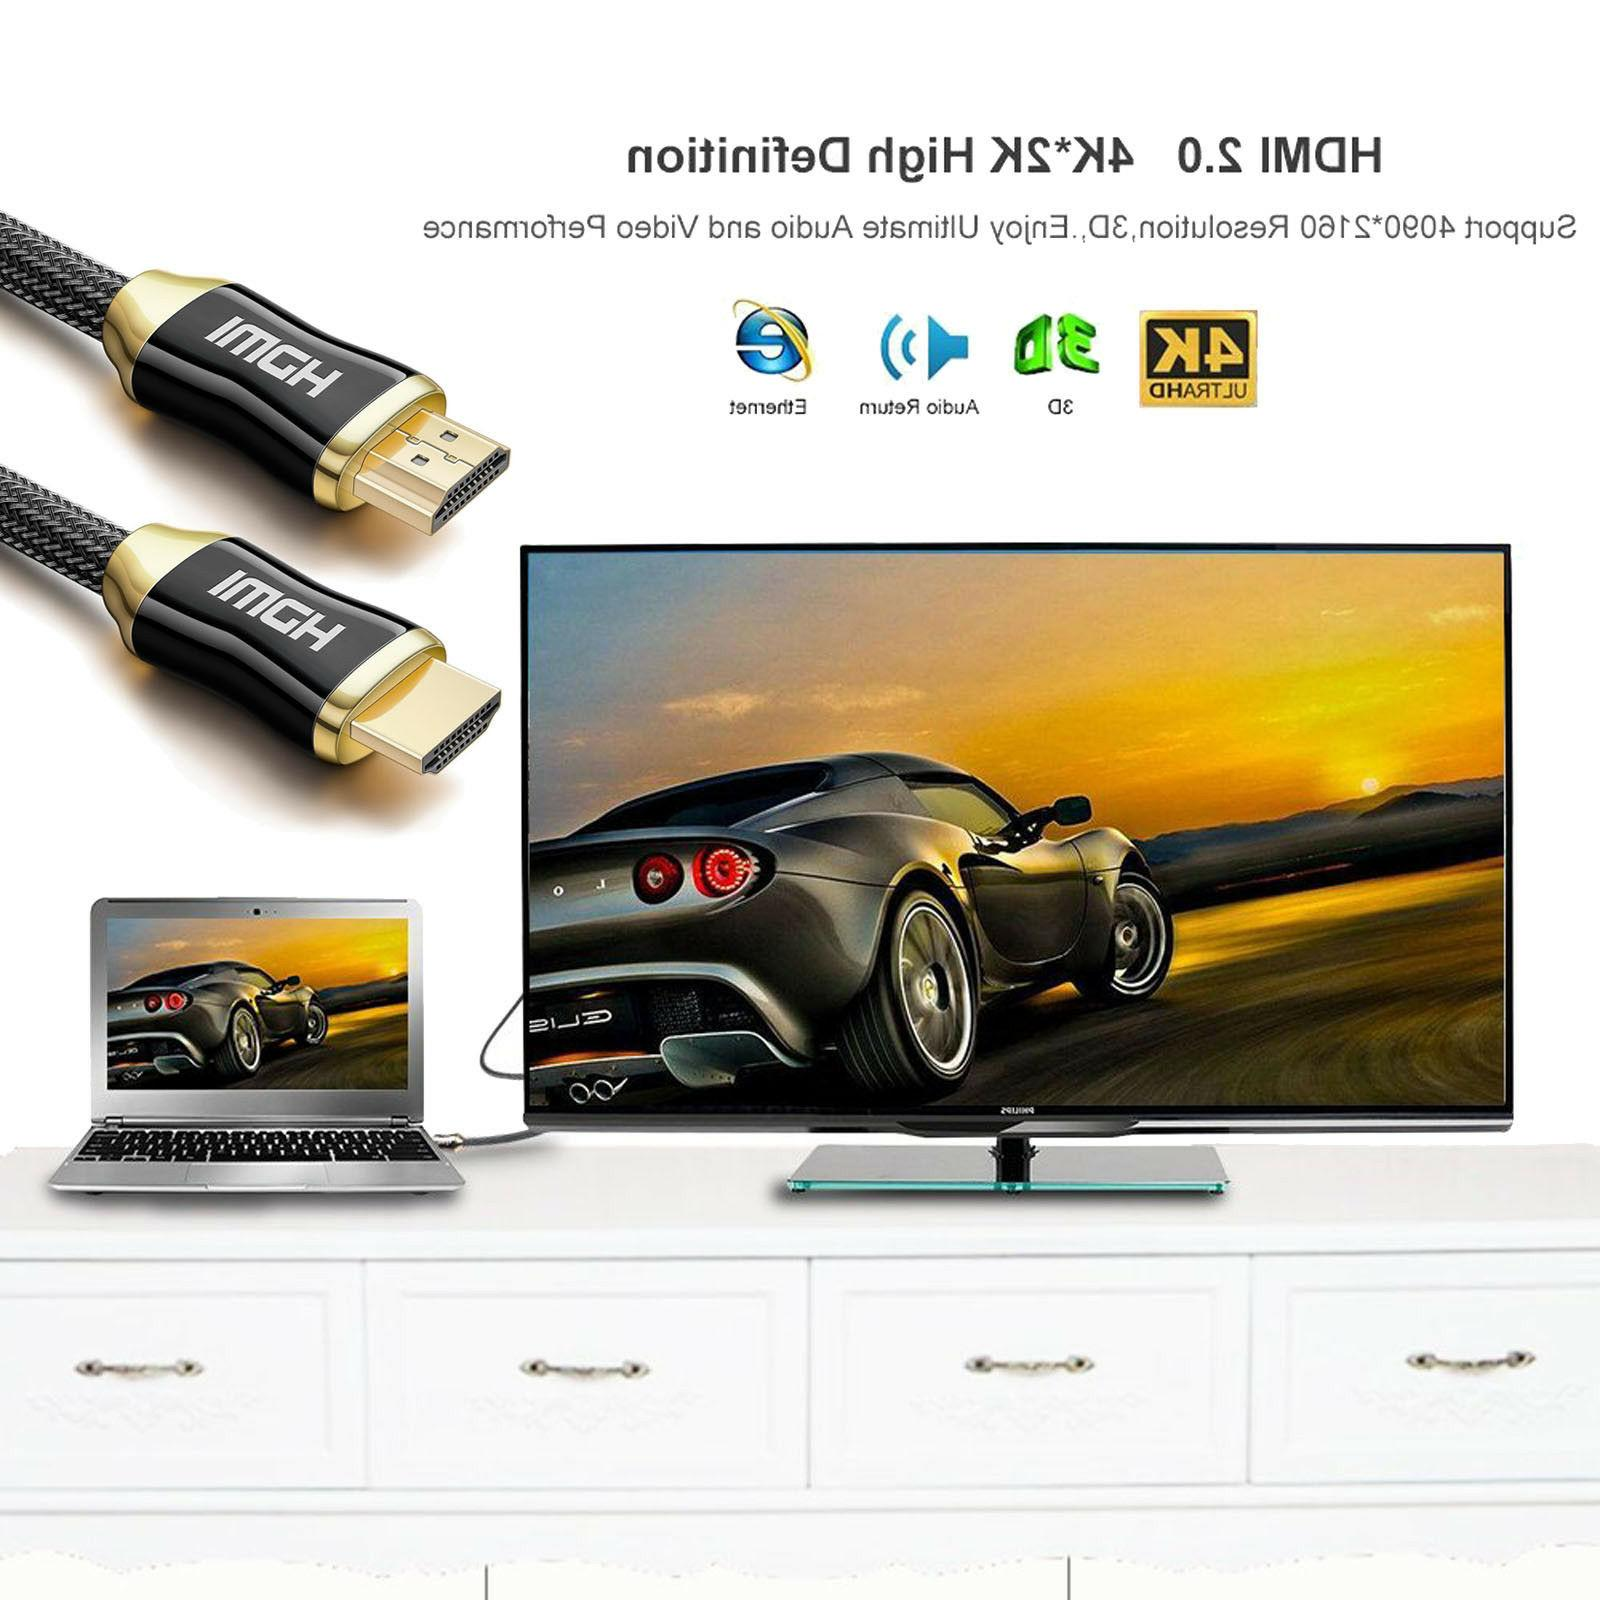 HDMI Cable 50ft 60Hz HDR, ARC, HDCP2.2, 3D 18Gbps 4:4:4/4:2:2/4:2:0